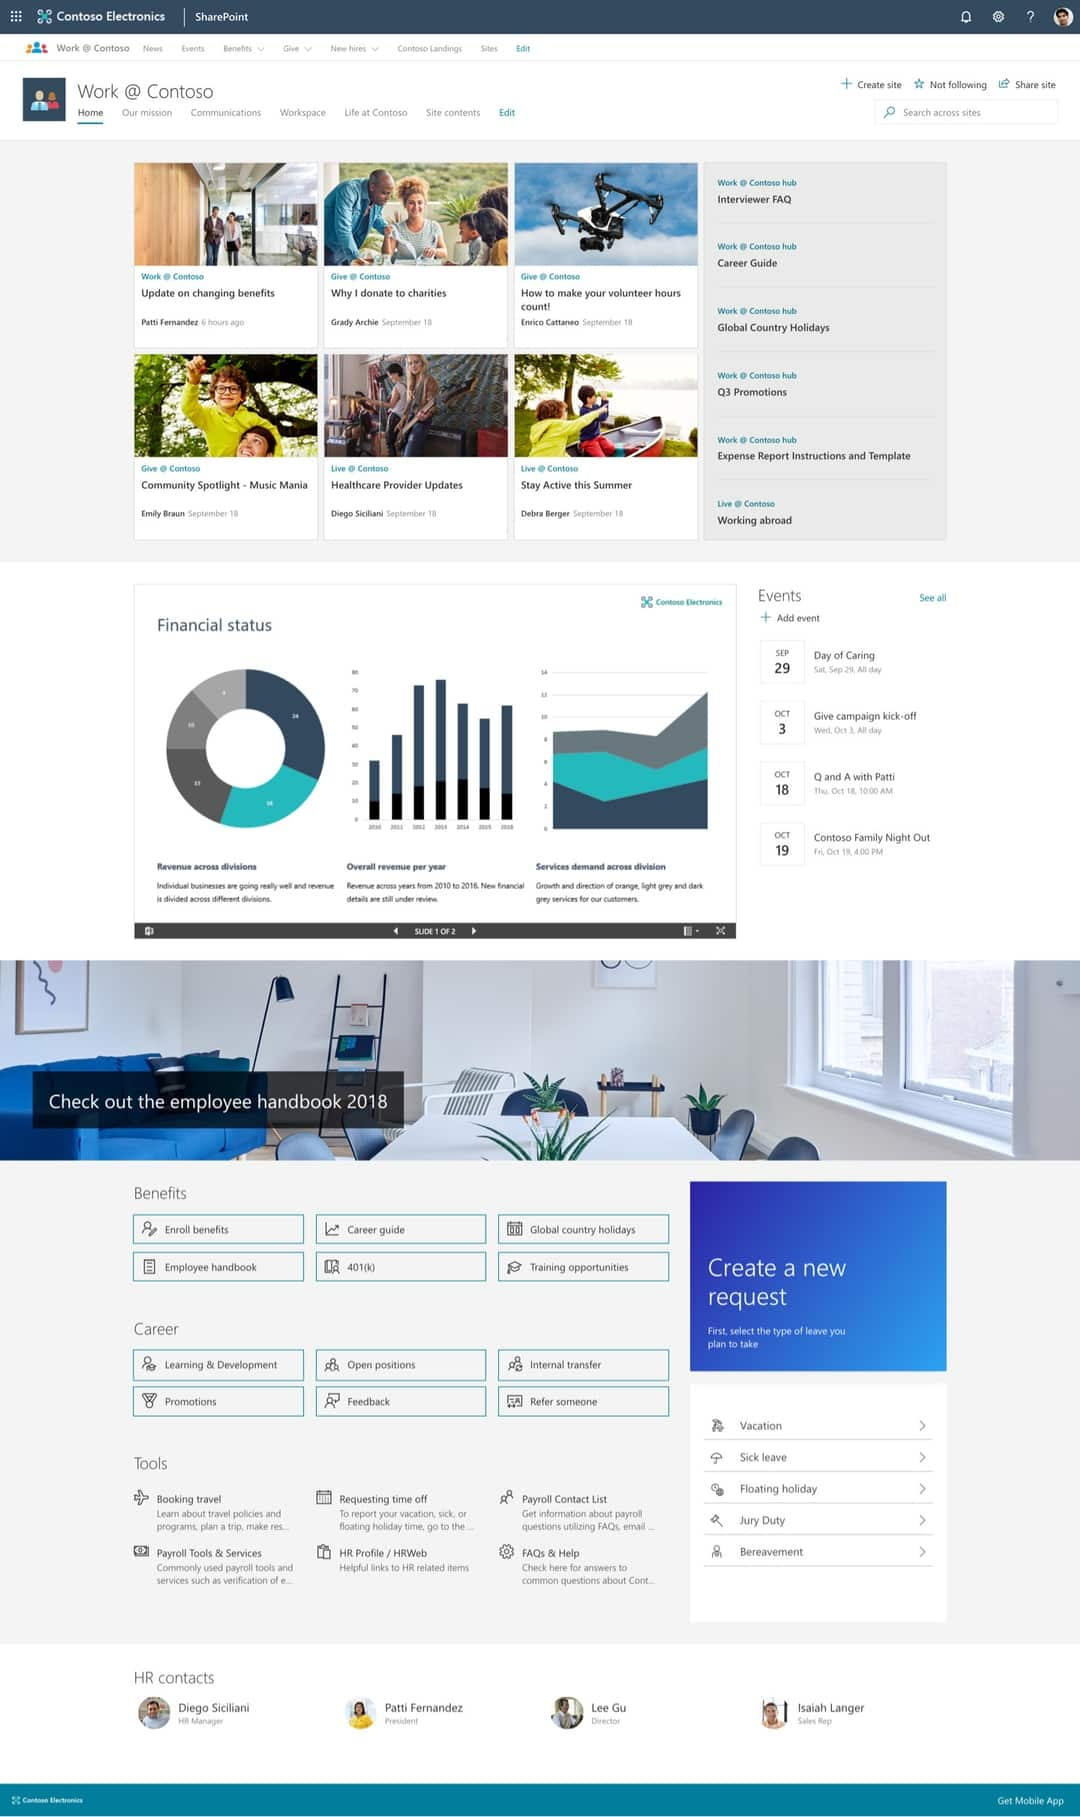 12 Great Examples Of Modern Sharepoint Intranet Microsoft365 Atwork,Design West Architects